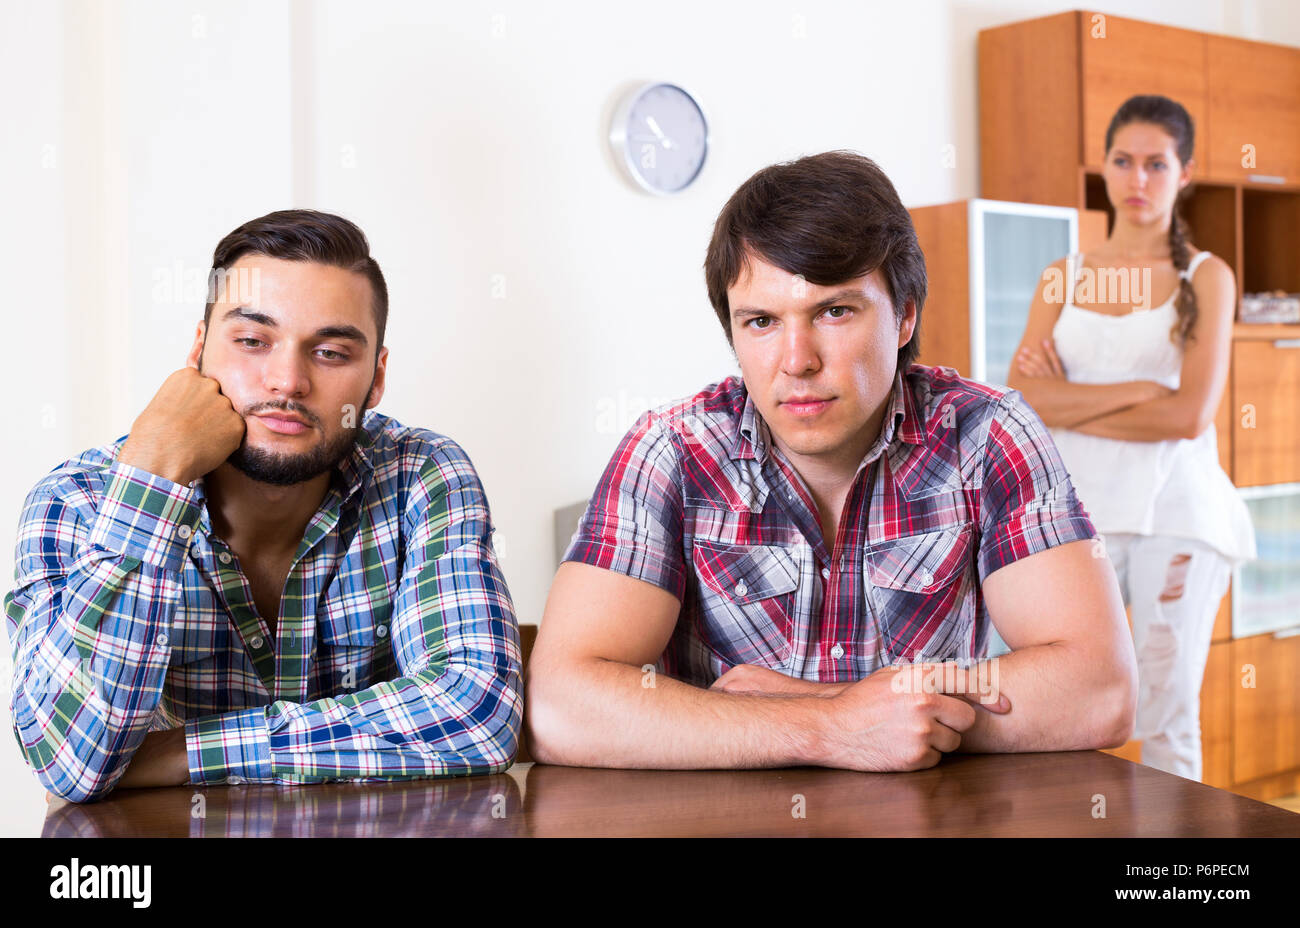 Portrait of sad young adults at home: problems of love triangle - Stock Image